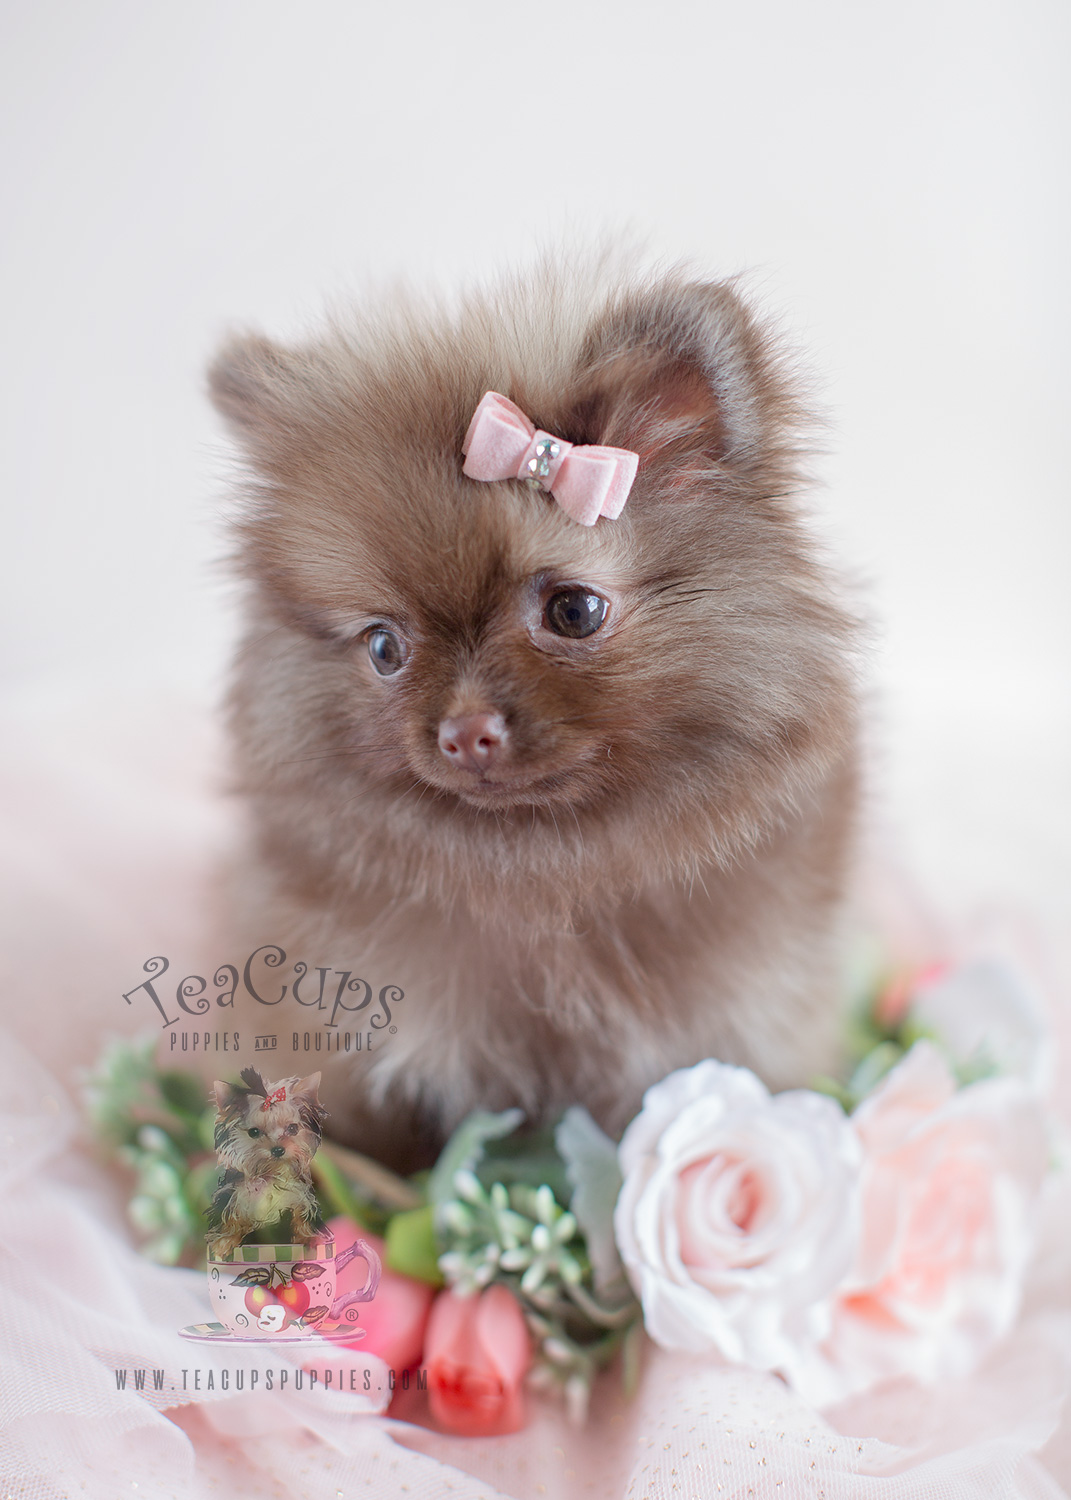 darling little pomeranian puppies for sale teacups puppies boutique. Black Bedroom Furniture Sets. Home Design Ideas